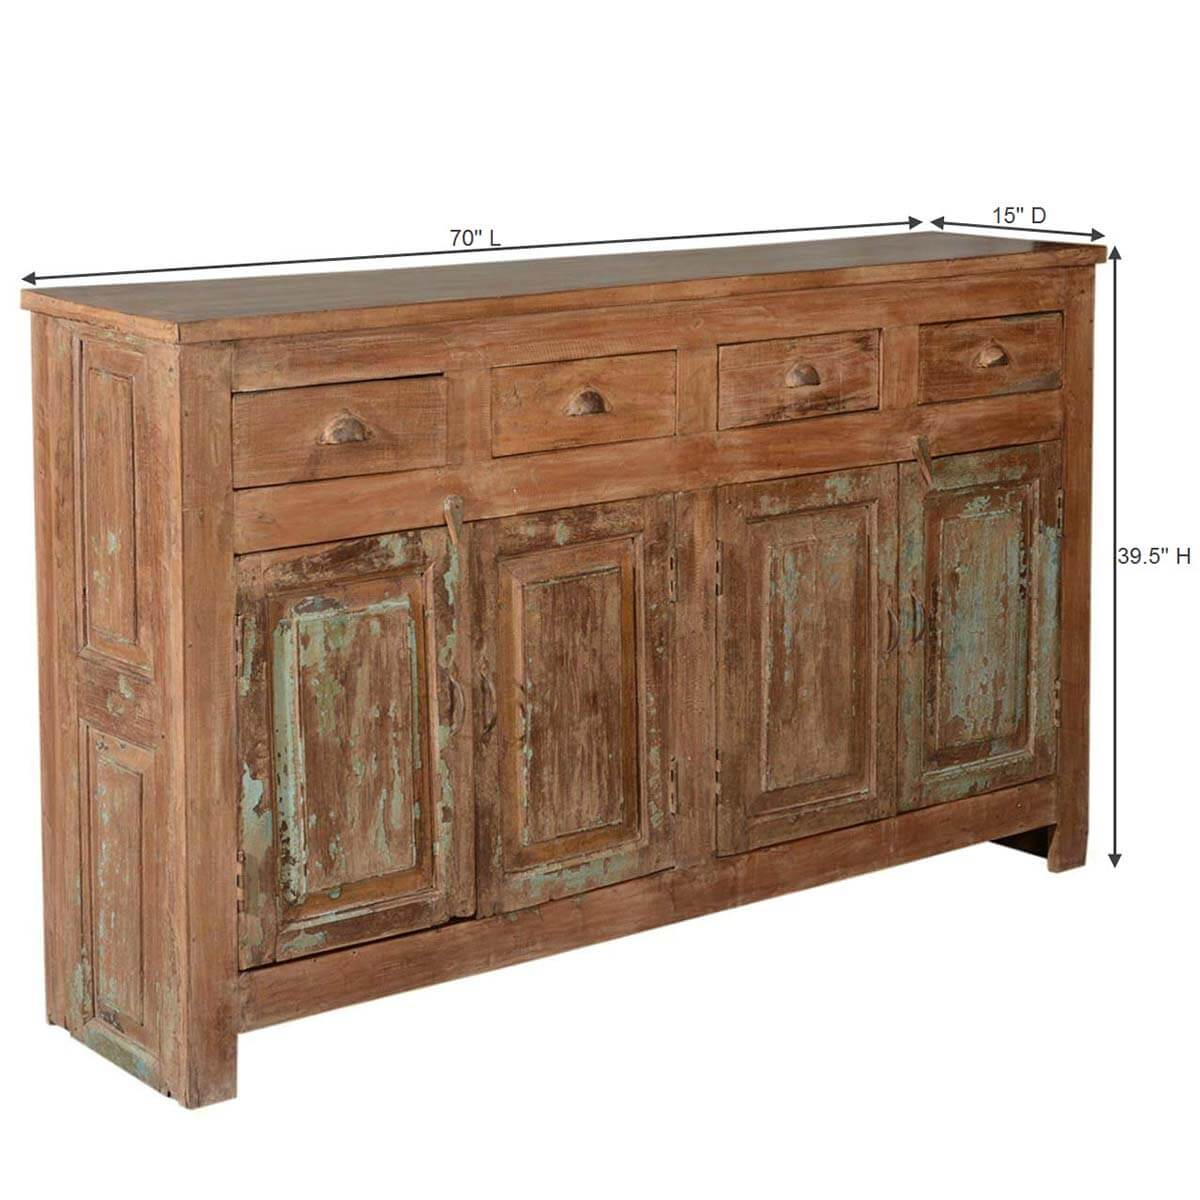 Rustic Shaker Reclaimed Wood 70 Quot Sideboard Buffet Cabinet